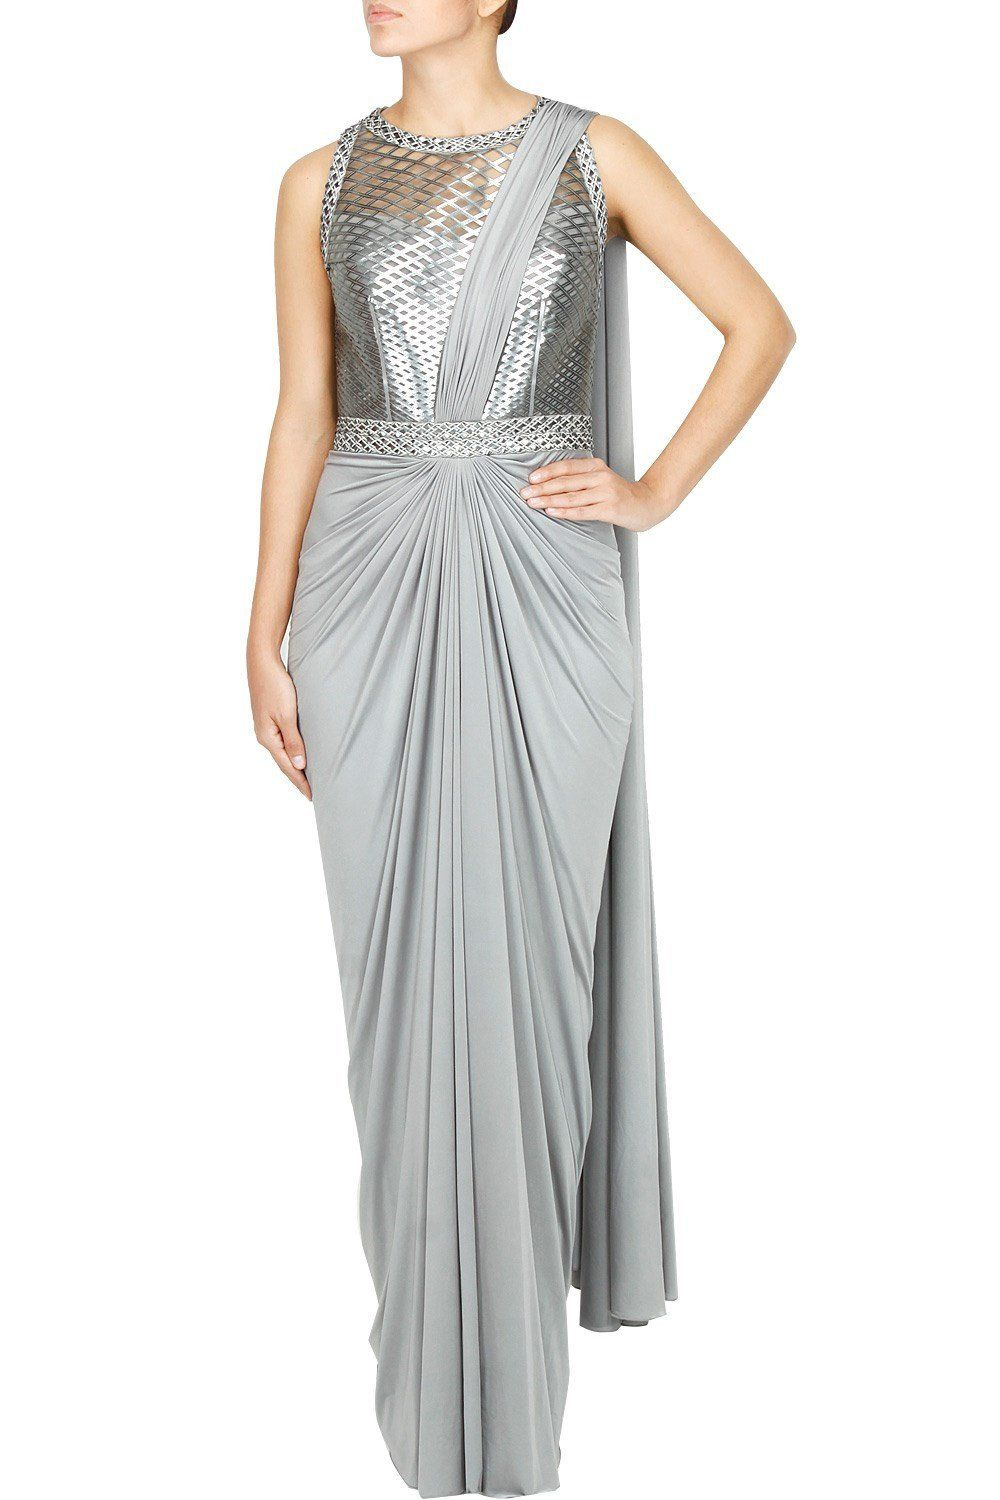 Grey color saree gown | Gowns online, Saree and Gray color